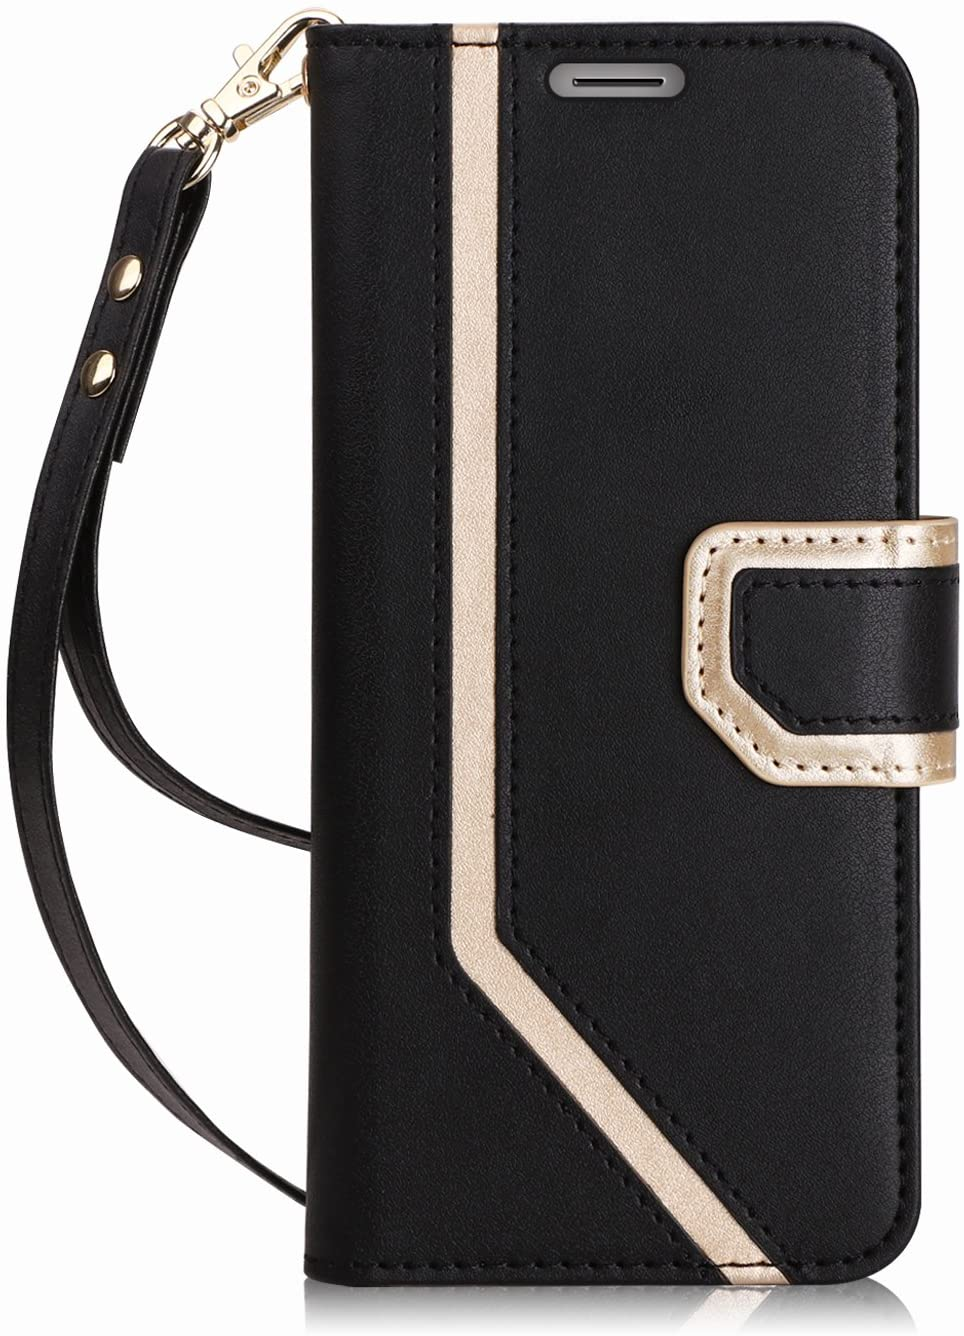 FYY Leather Case with Mirror for Samsung Galaxy S9 Plus, Leather Wallet Flip Folio Case with Mirror and Wrist Strap for Samsung Galaxy S9 Plus Black